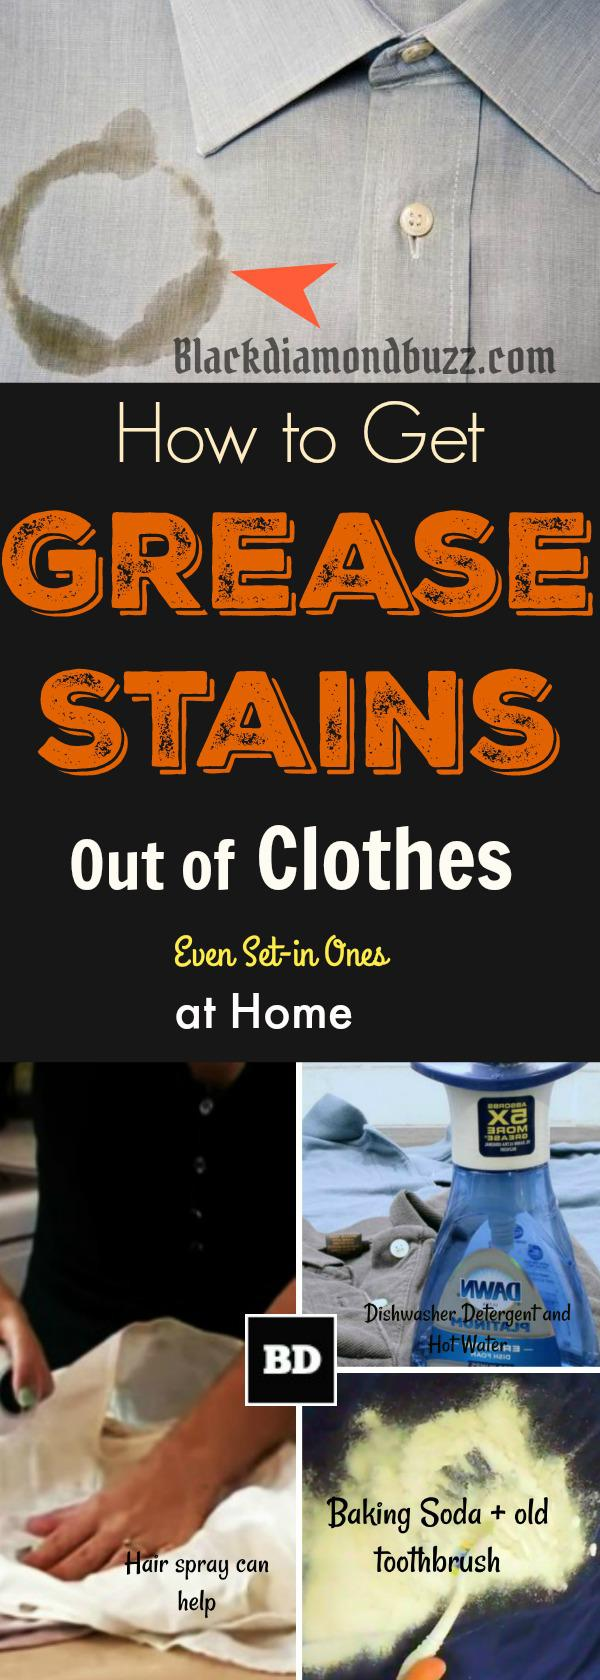 how to get grease stains out of clothes even the set in ones_